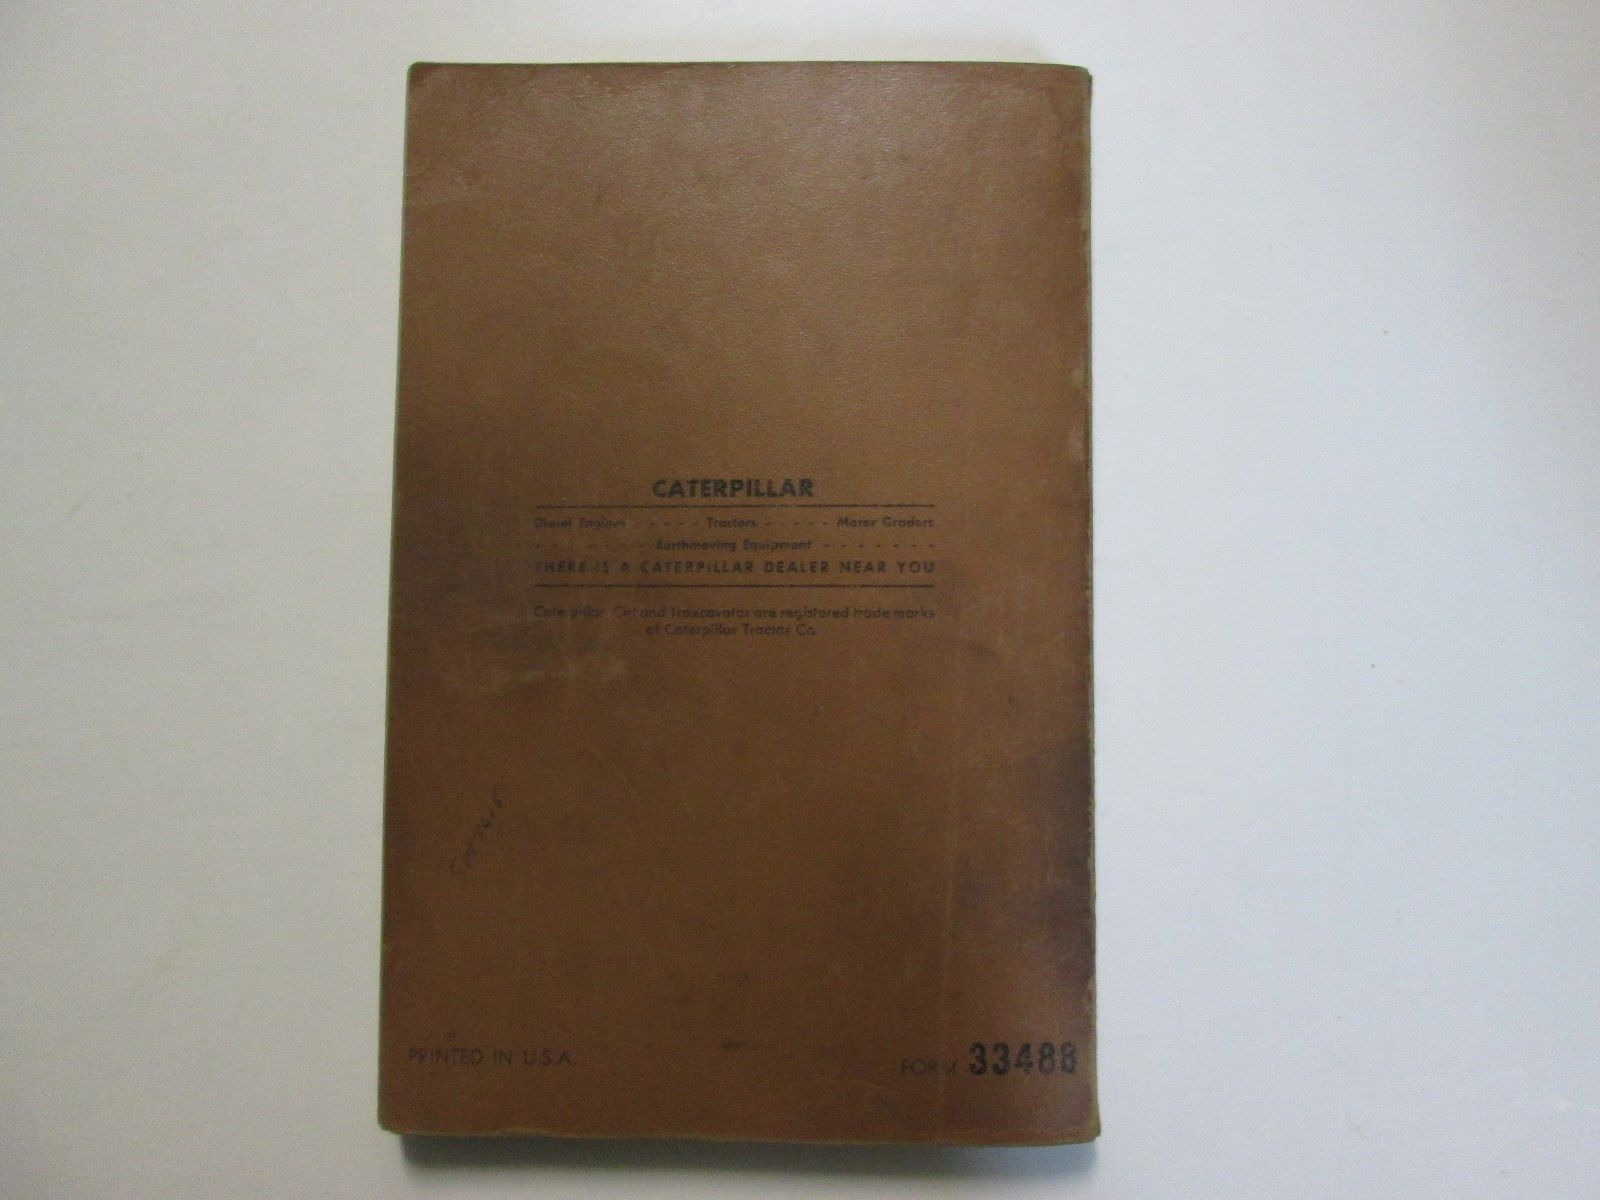 Caterpillar 572 Pipelayer Parts Book 21A245 To 21A331 USED OEM FORM 33488 CAT